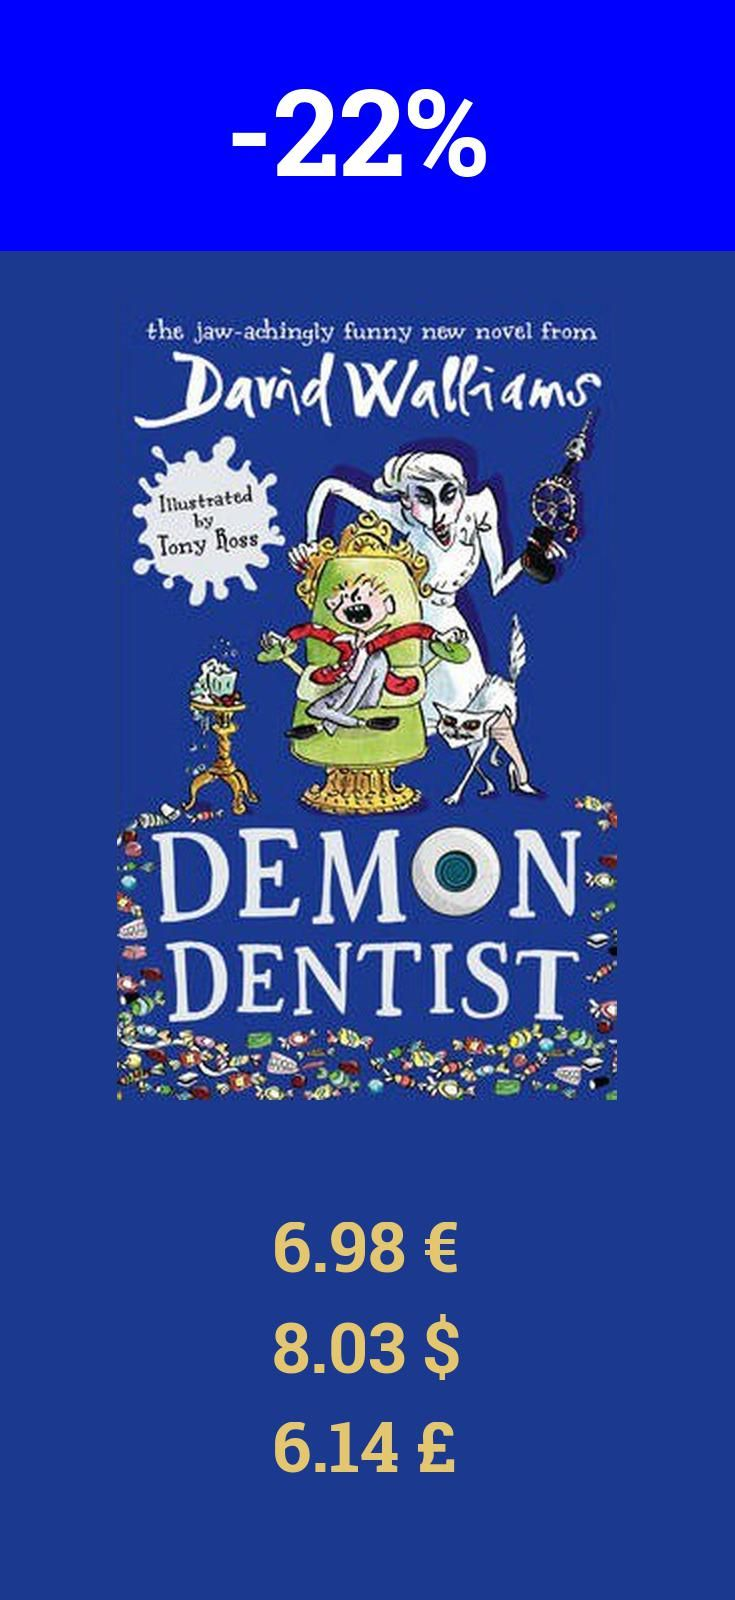 Reviews children s book review demon dentist david walliams - Since 2008 David Walliams Has Taken The Children S Literary World By Storm The Demon